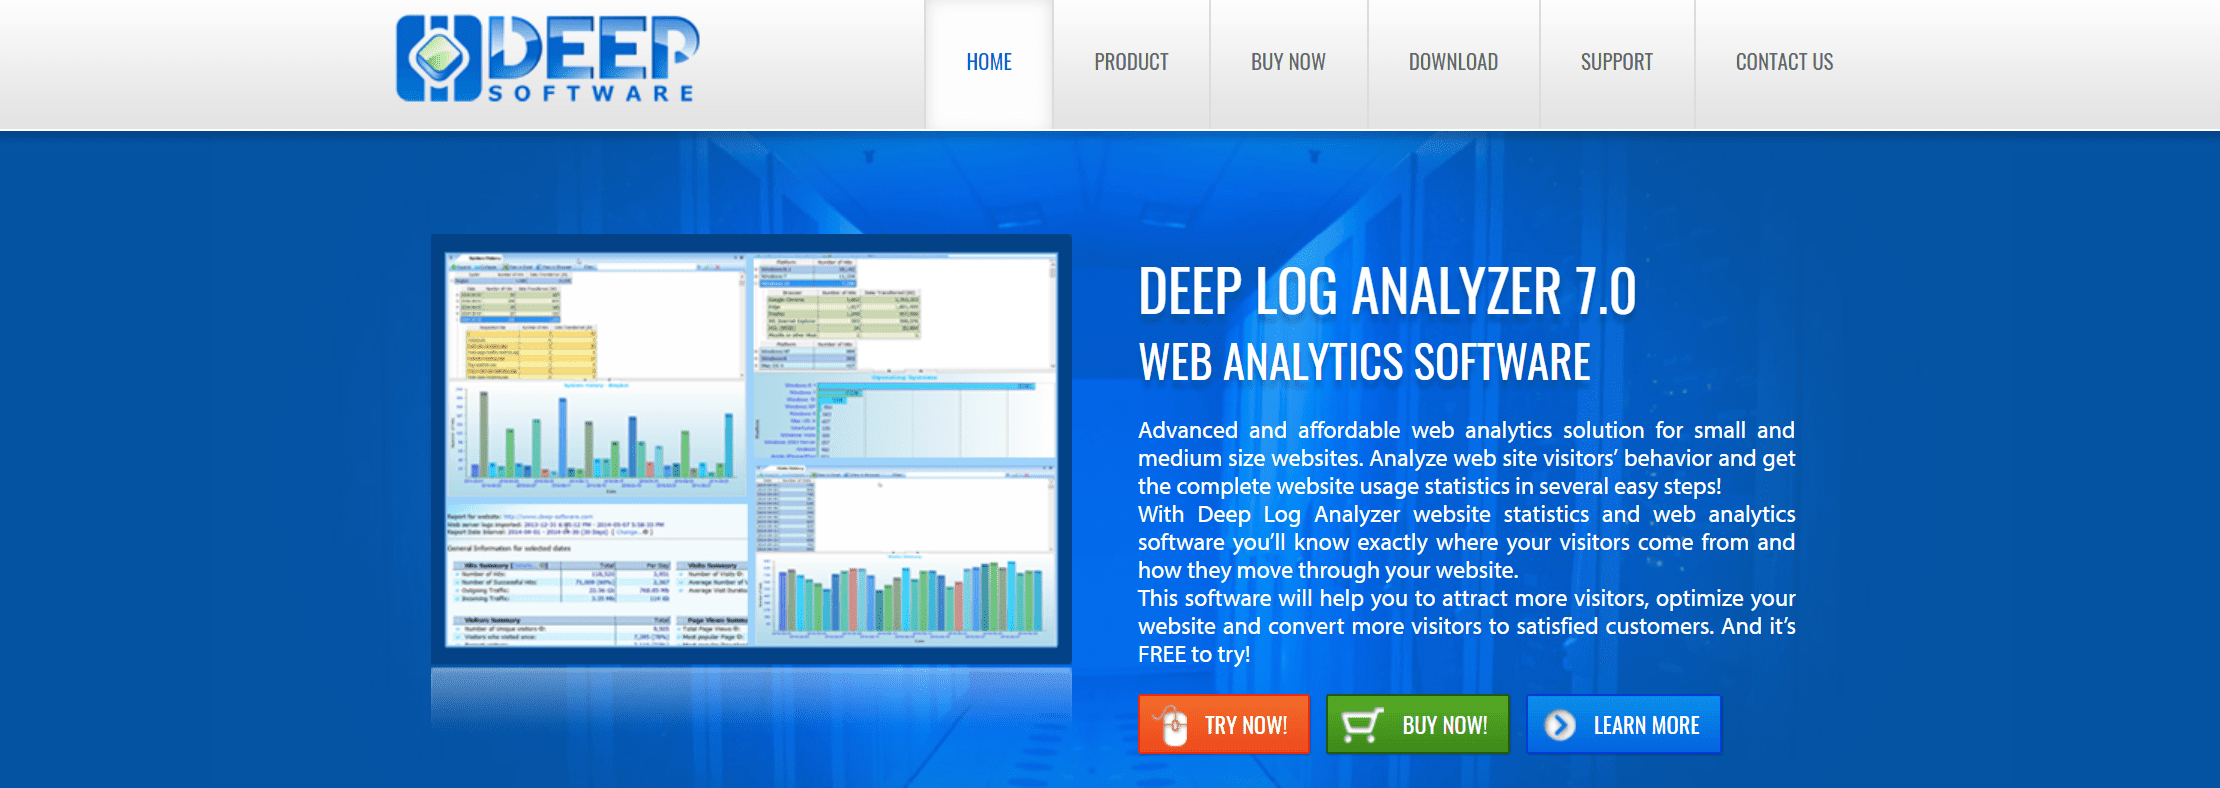 Free Web Log Analysis Tools